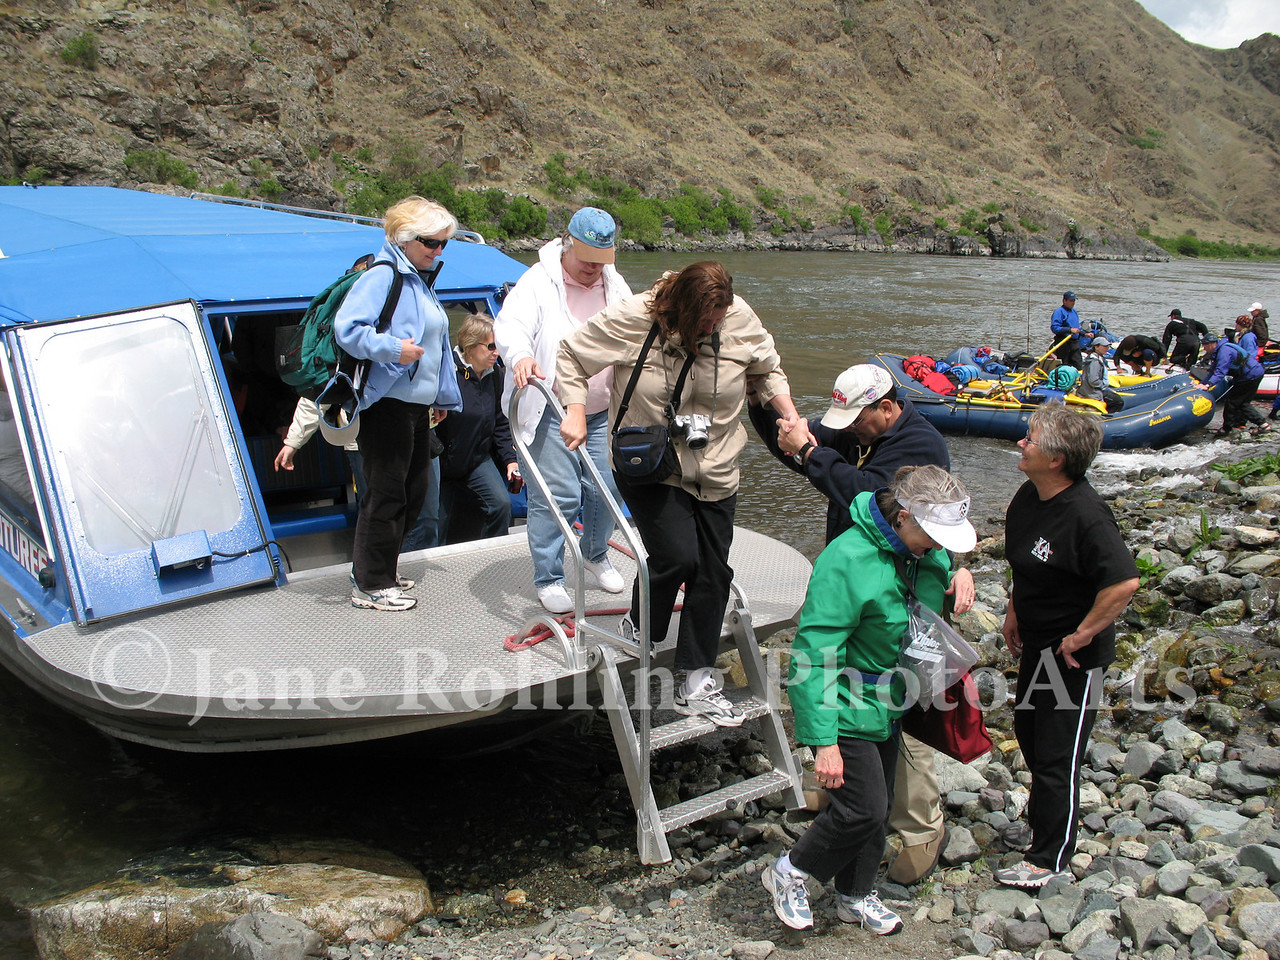 Whitewater jetboat and rafting groups at the mouth of Kirkwood Creek in Hells Canyon National Recreation Area, Snake River, Idaho.